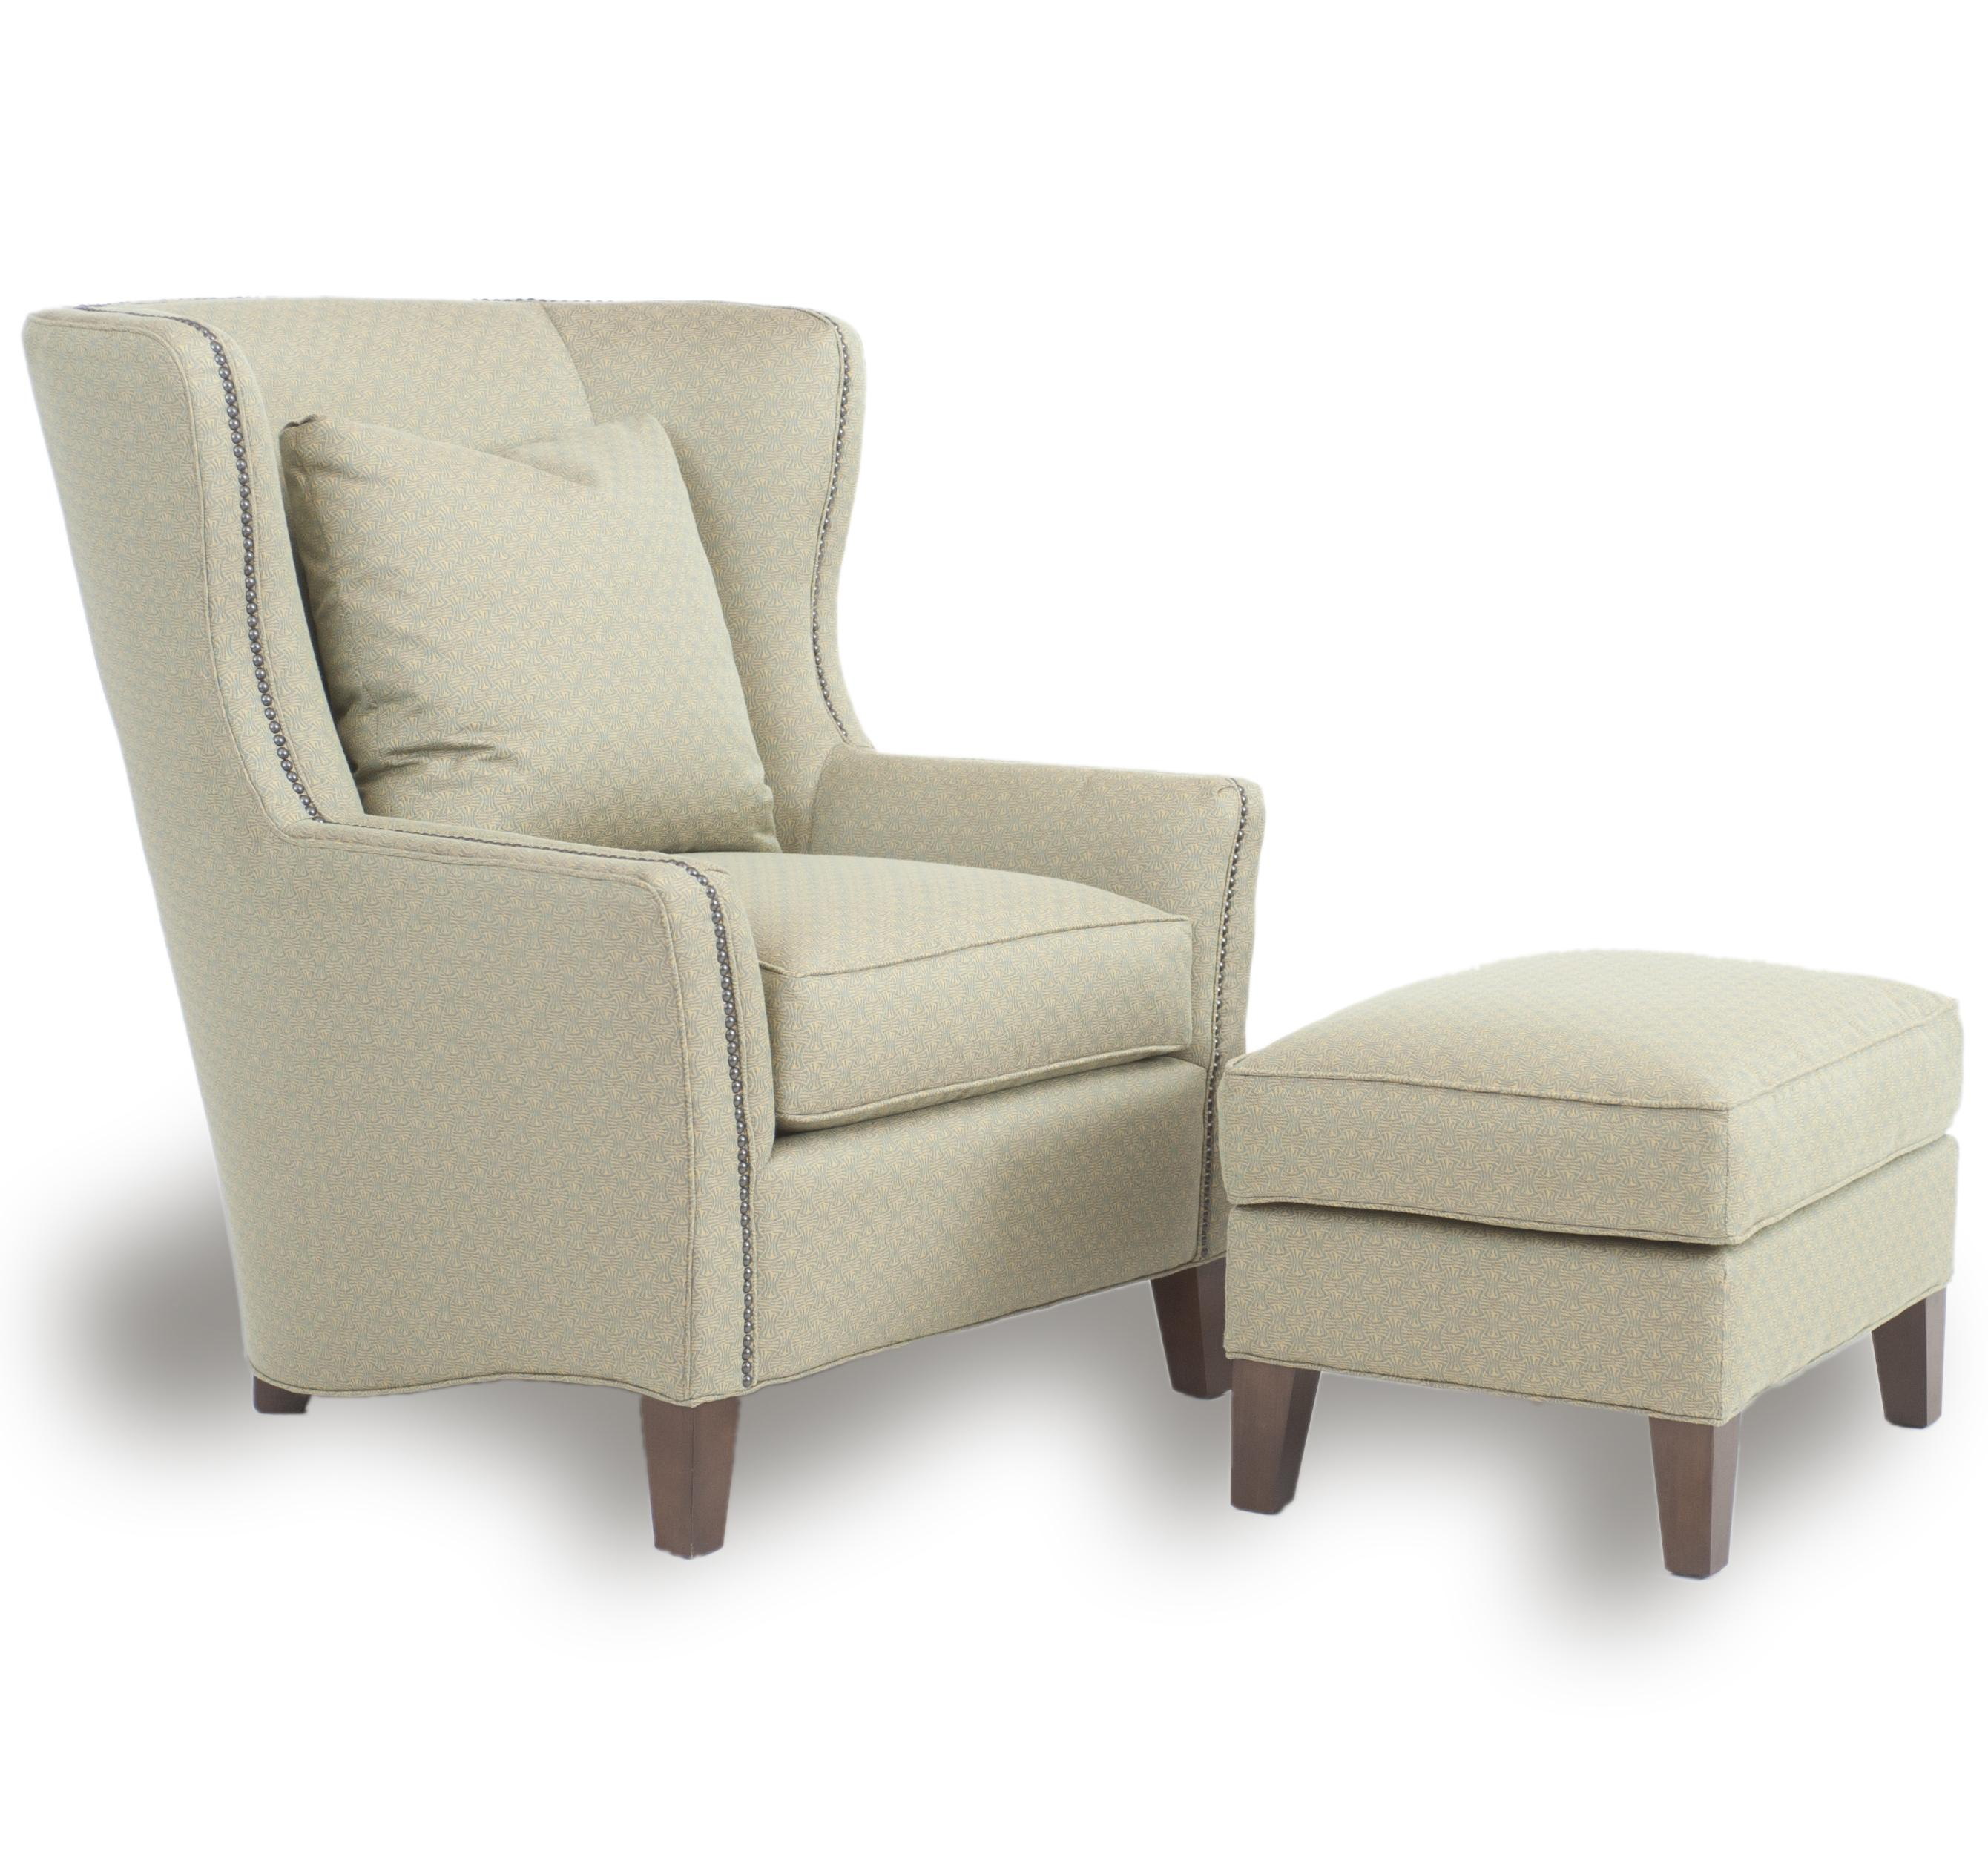 Wingback Chair Contemporary Wingback Chair With Track Arms By Smith